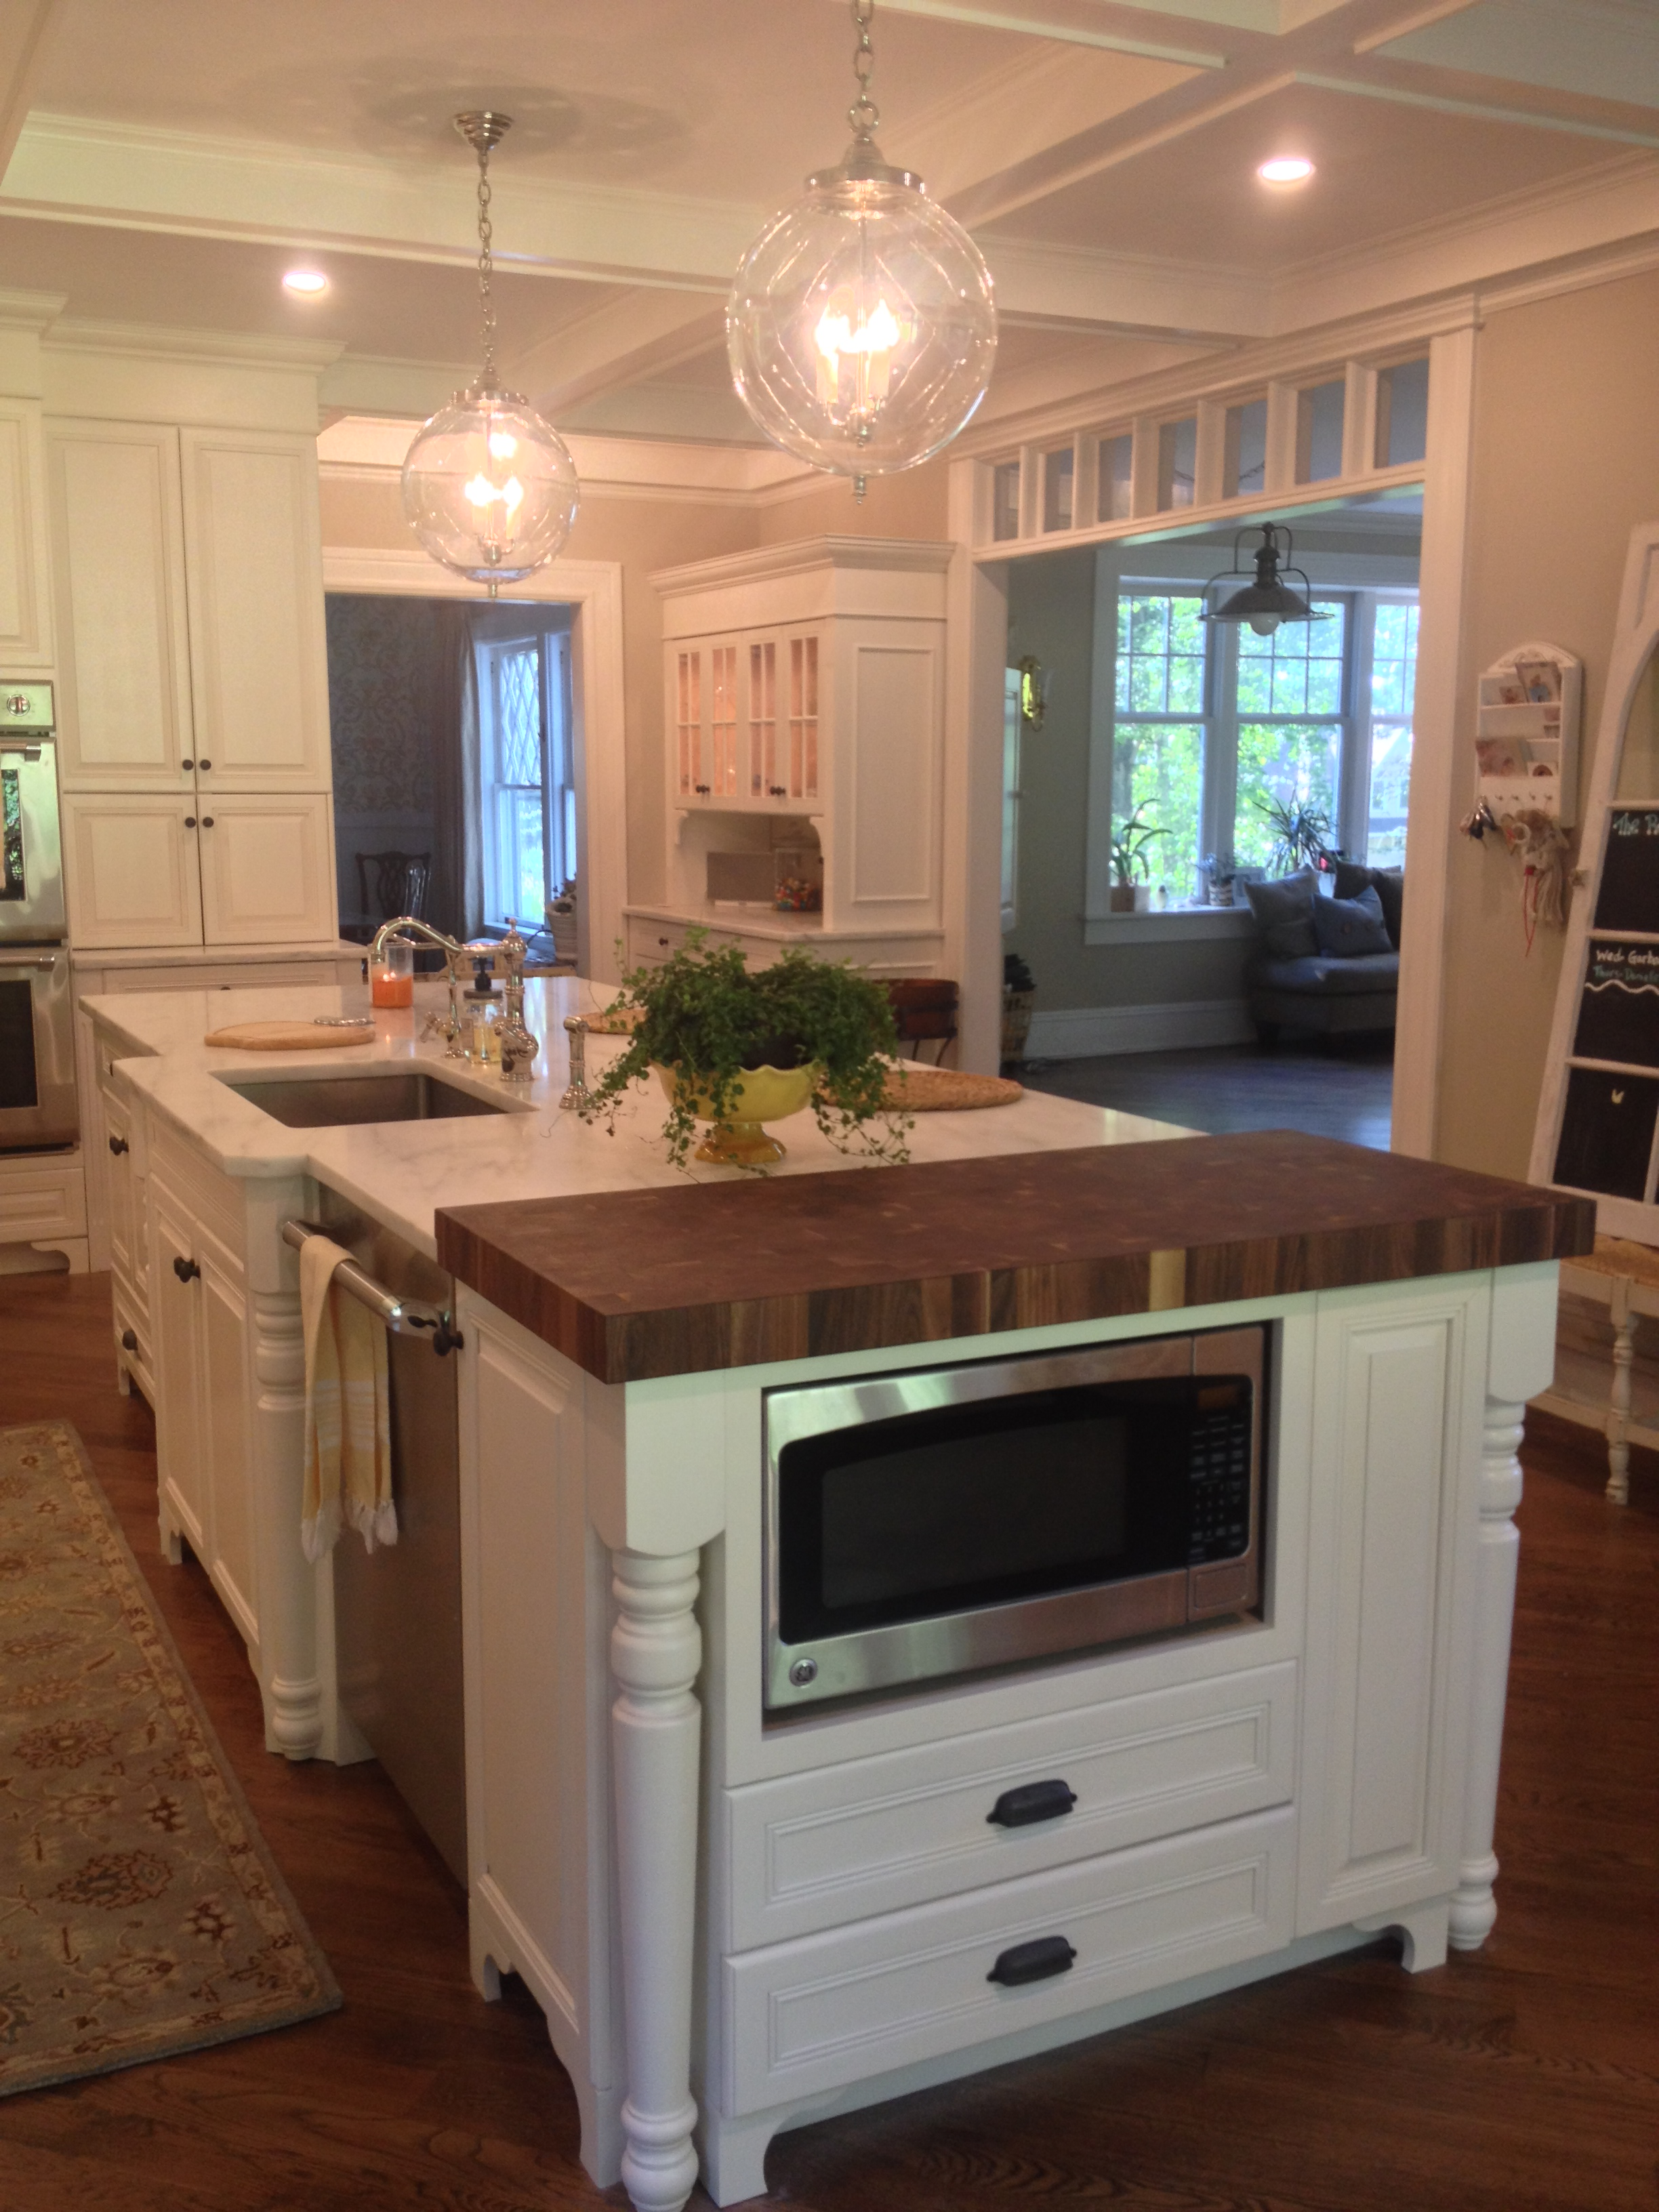 White Kitchen Island With Walnut Butcher Block Countertop : Butcher Block Countertops Reviews by Grothouse Customers